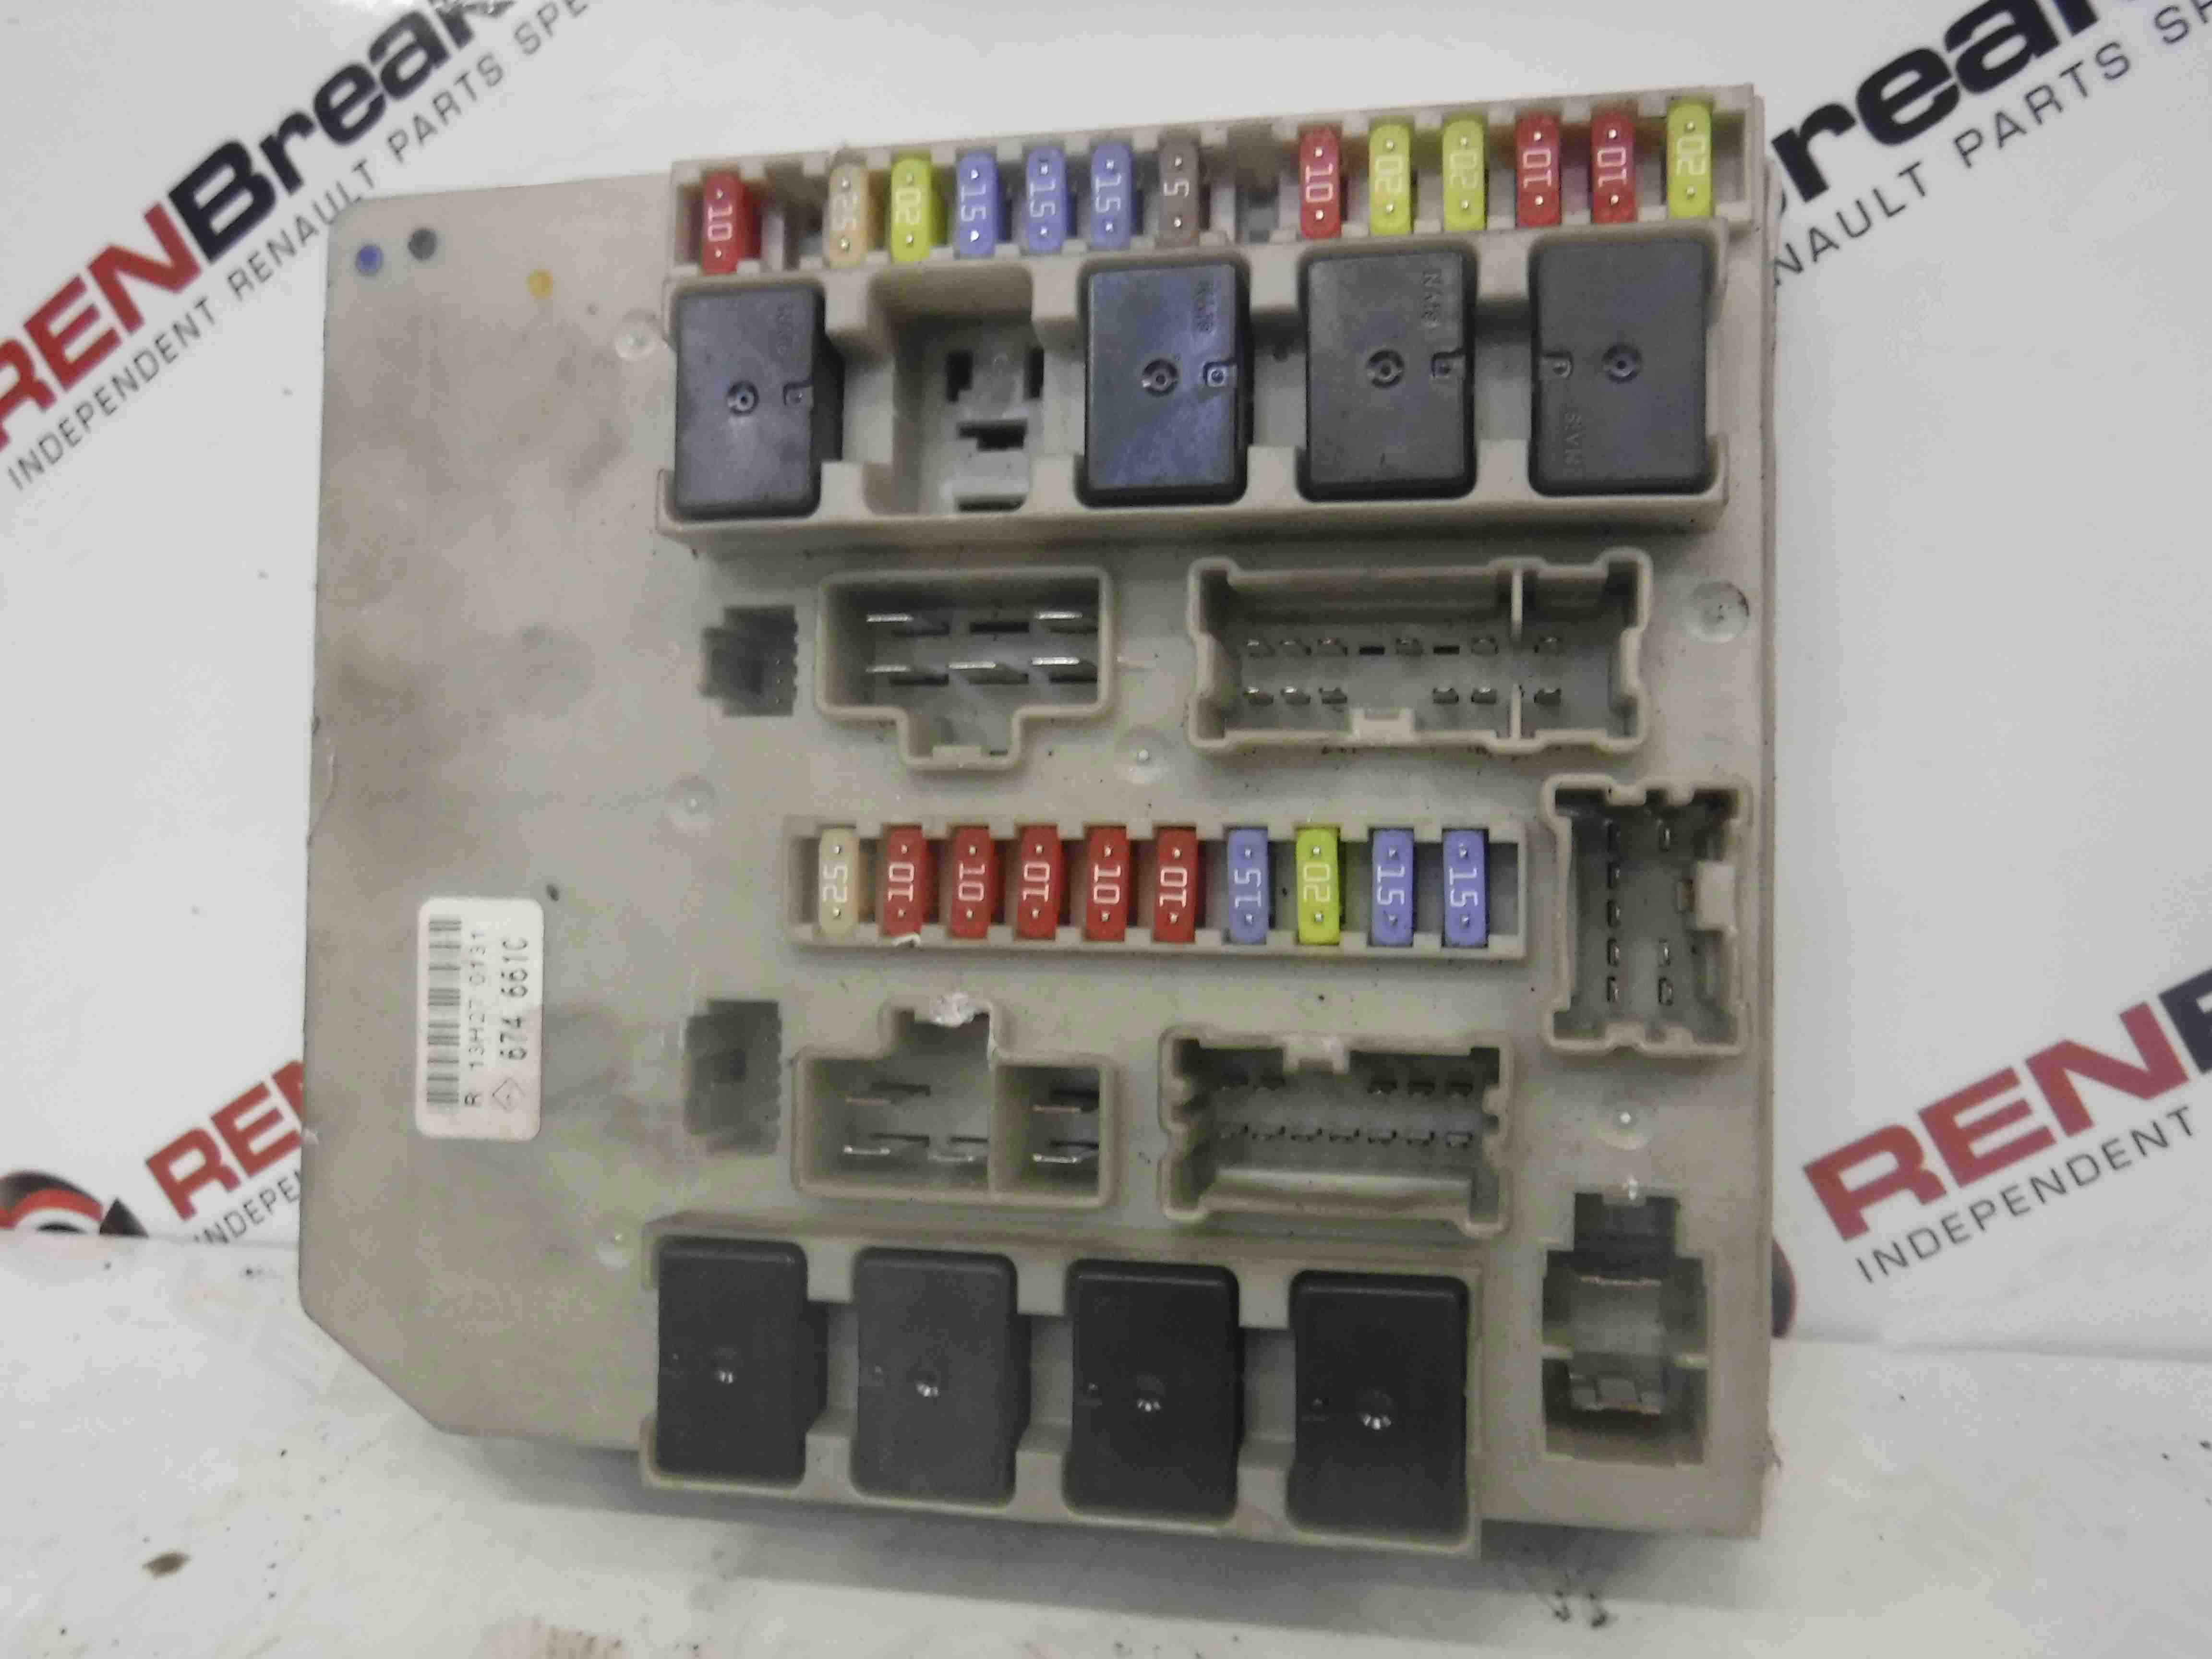 With Fuse Box Diagram Along With Renault Laguna Fuse Box Diagram